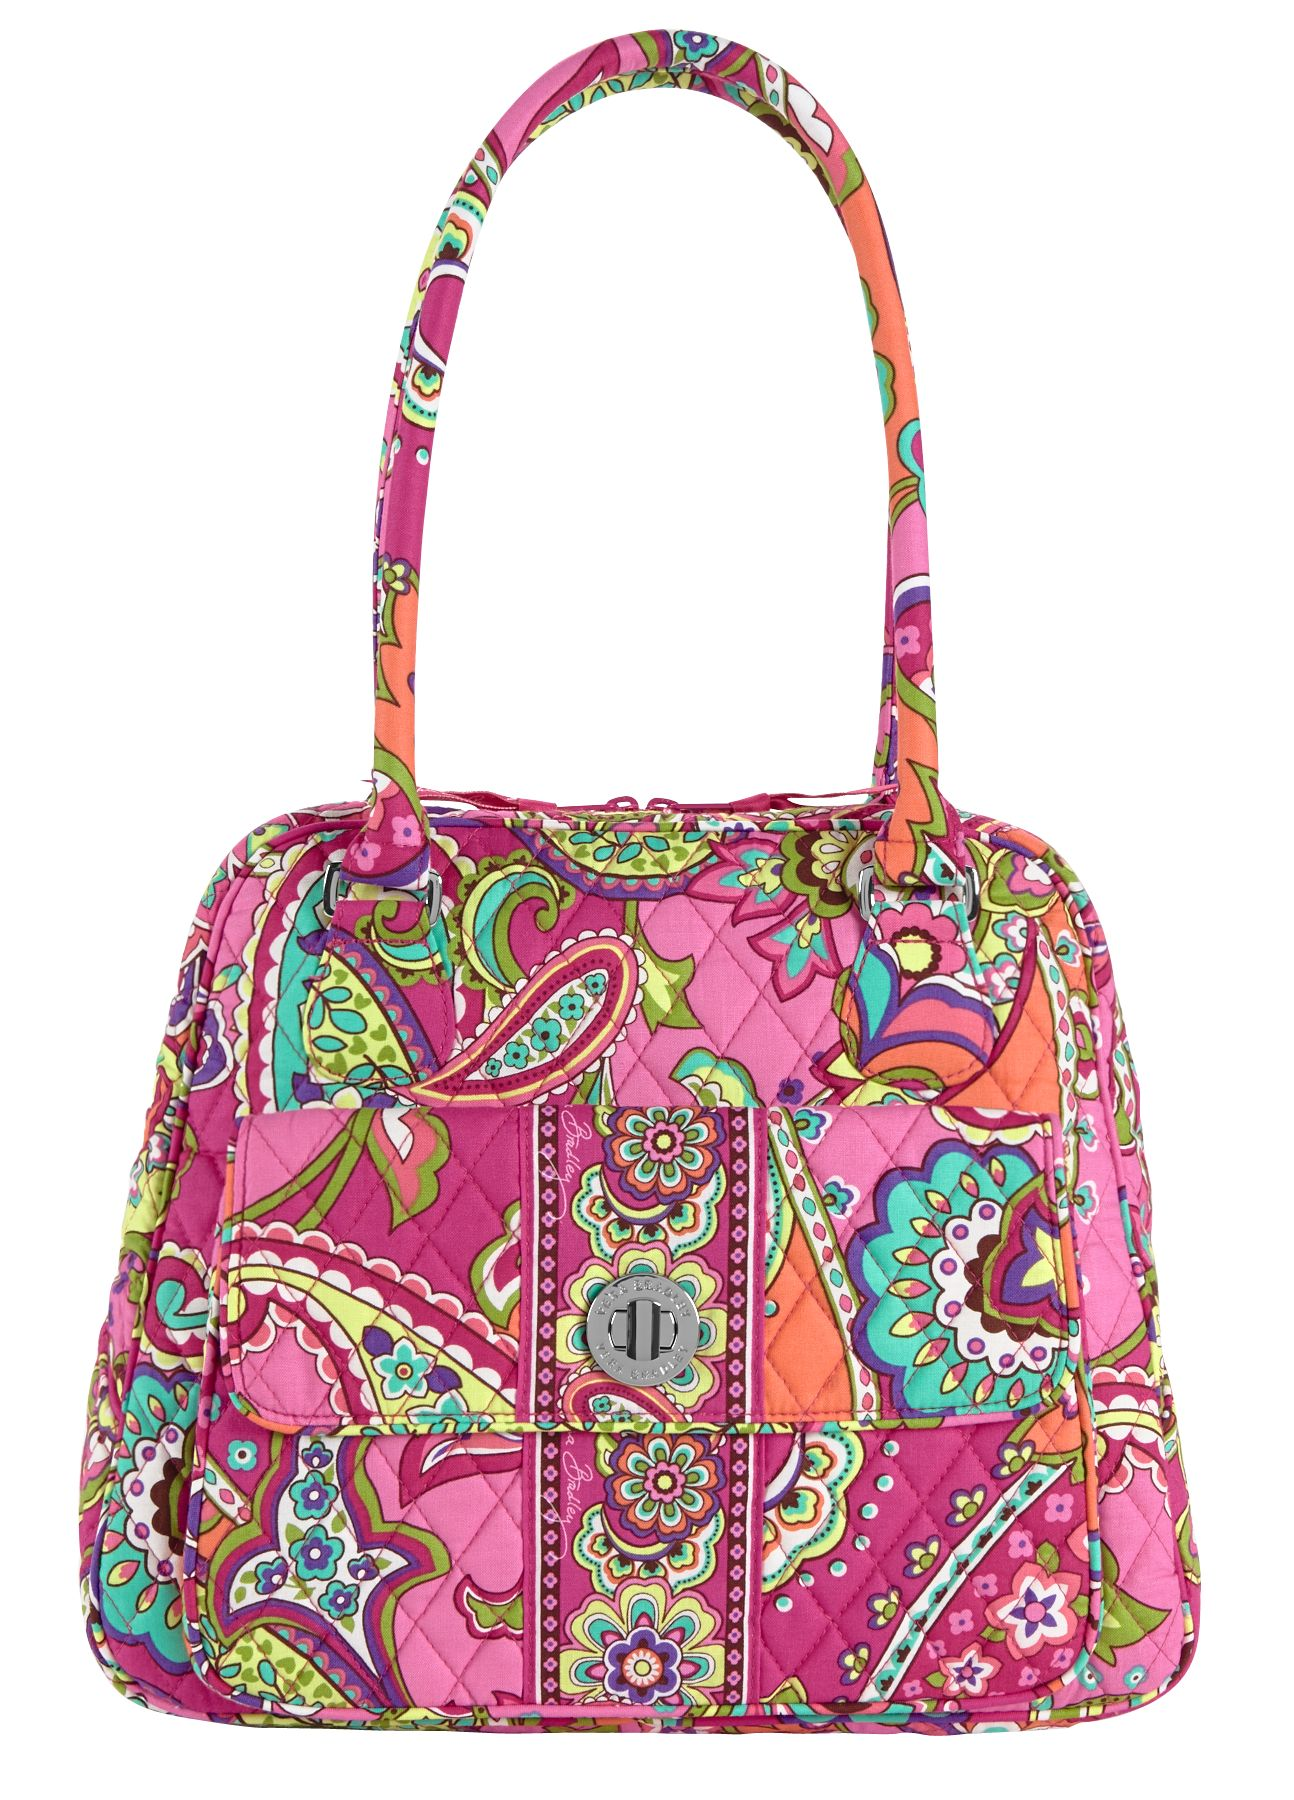 Vera Bradley Turn Lock Satchel in Pink Swirls